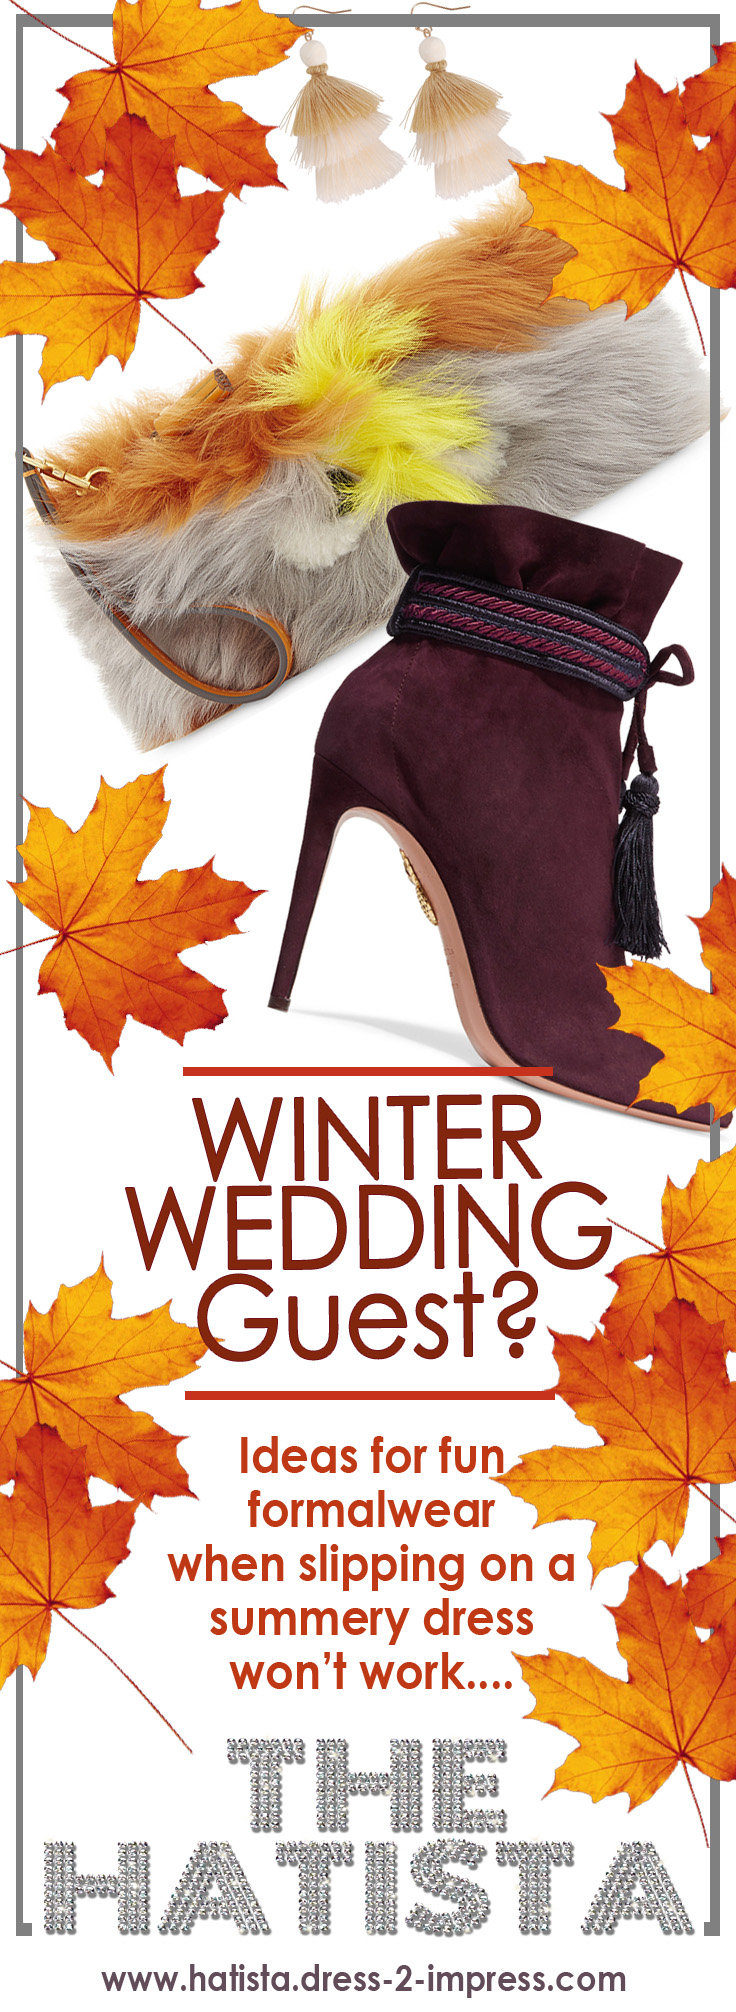 How to dress for friends christmas or winter wedding, when simply throwing on a floral dress won't work. Working with the velvet, sequins and pleats trends.  Read the Hatistas tips for outfit ideas, inspiration and colour suggestions on how to dress for winter wedding. #winterwedding #winter #christmas